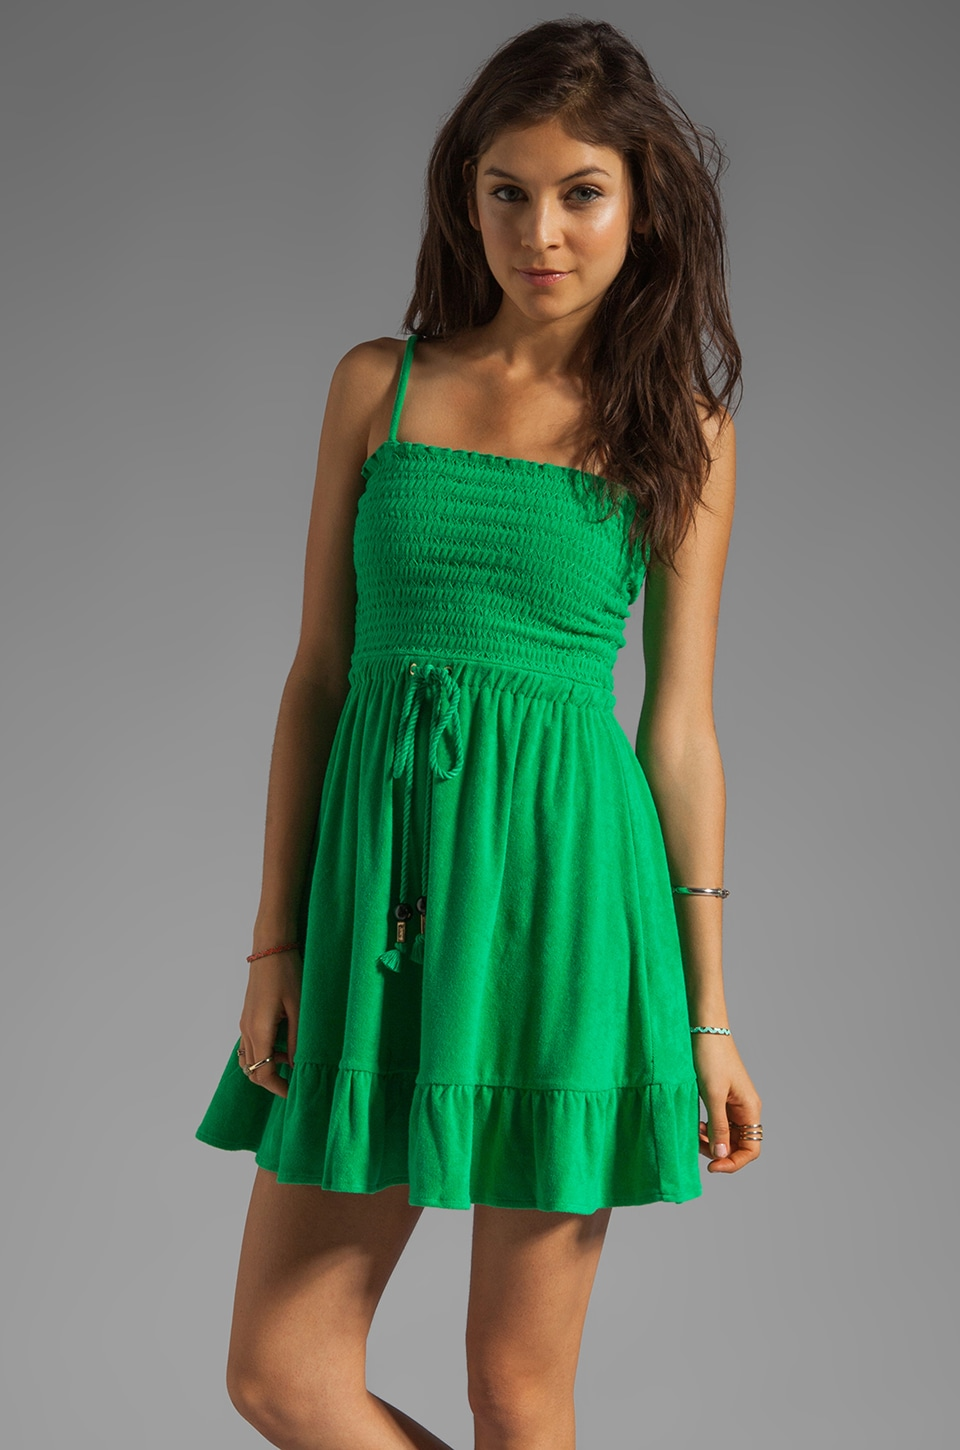 Juicy Couture Terry Dress in Lily Pad